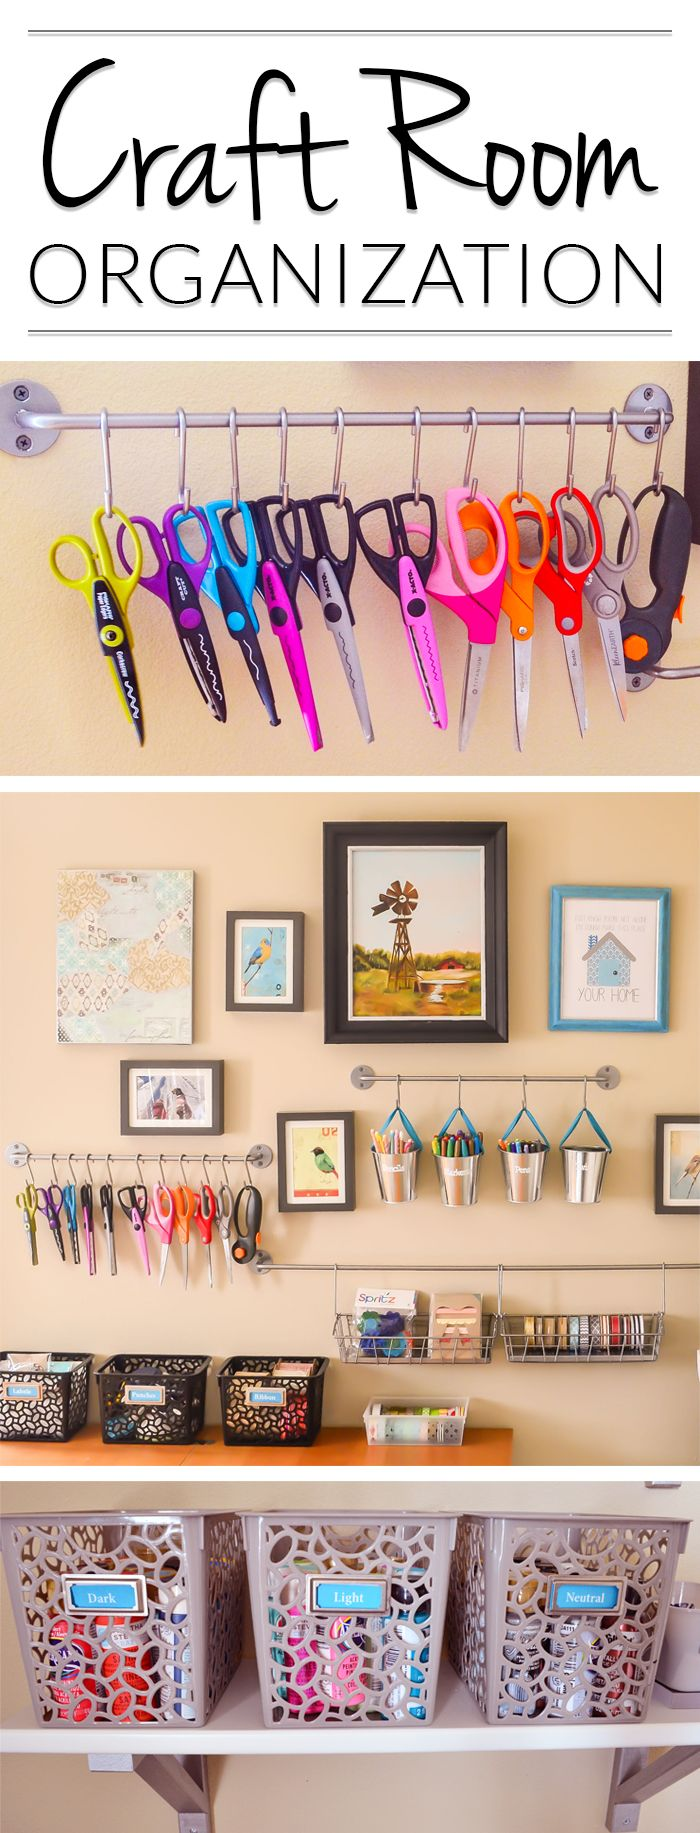 Oh! Craft Room Organizing & Storage ideas that would actually work in the…